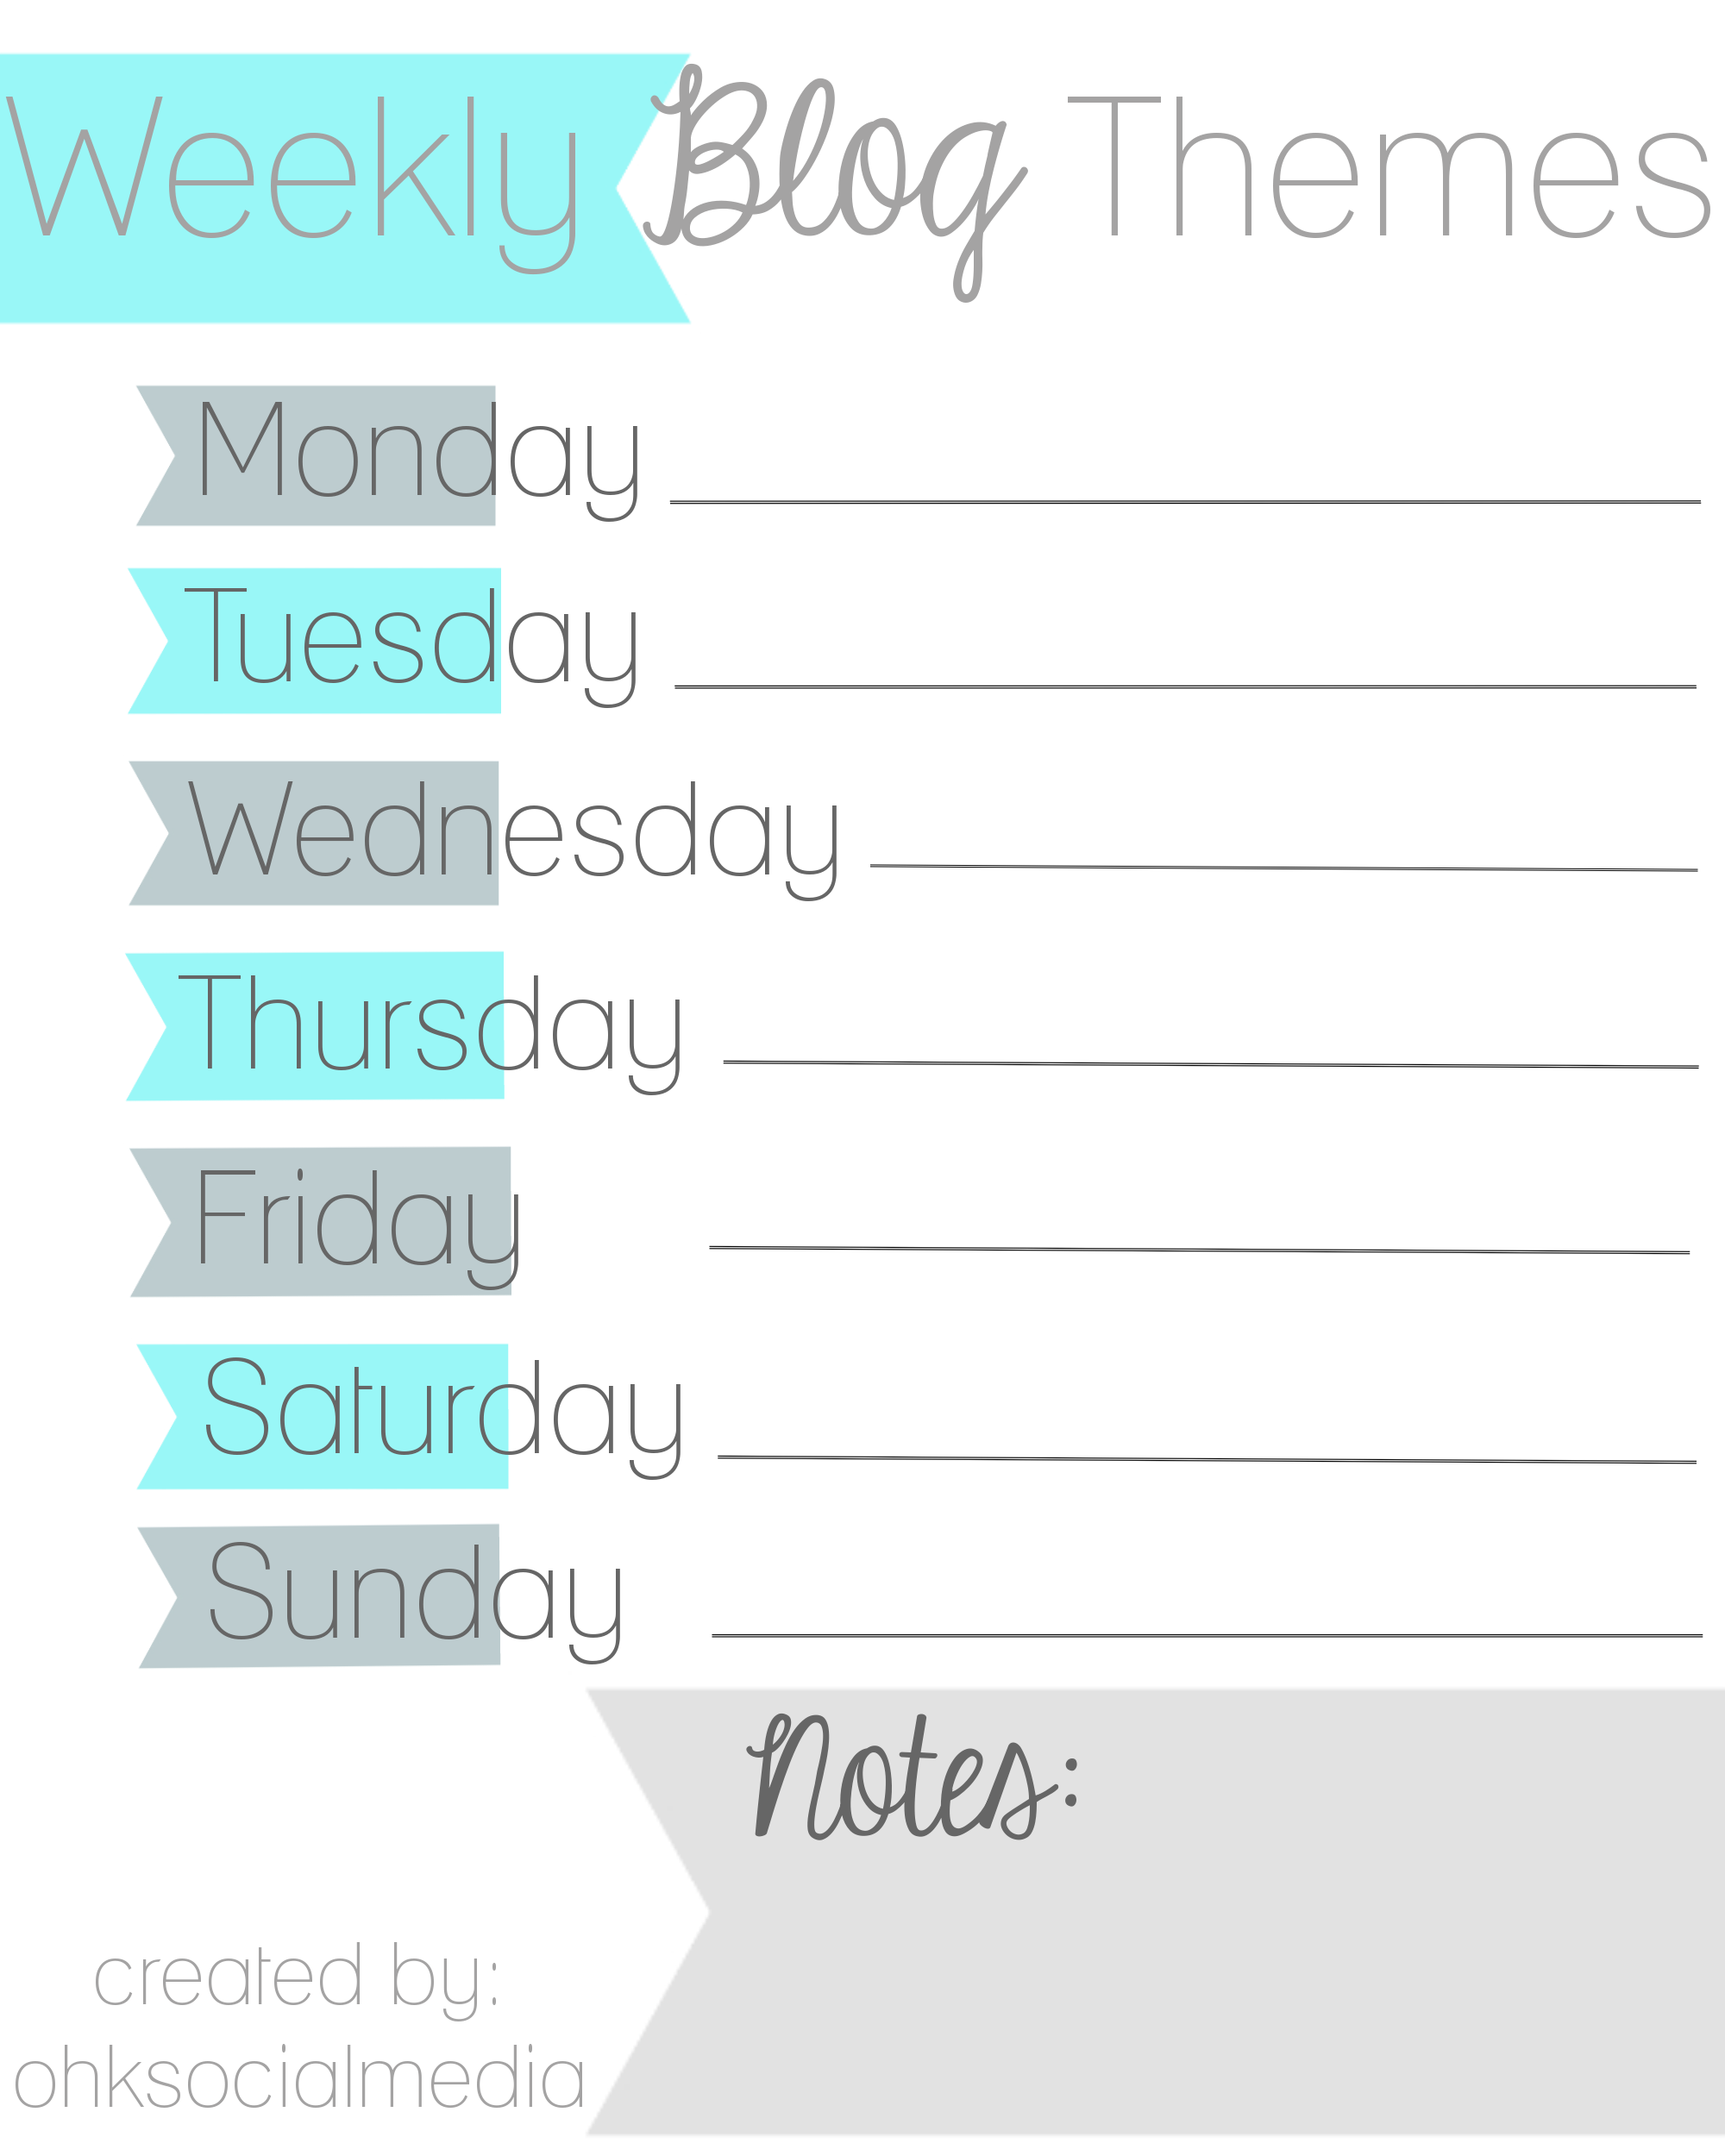 Blog Schedule Themes